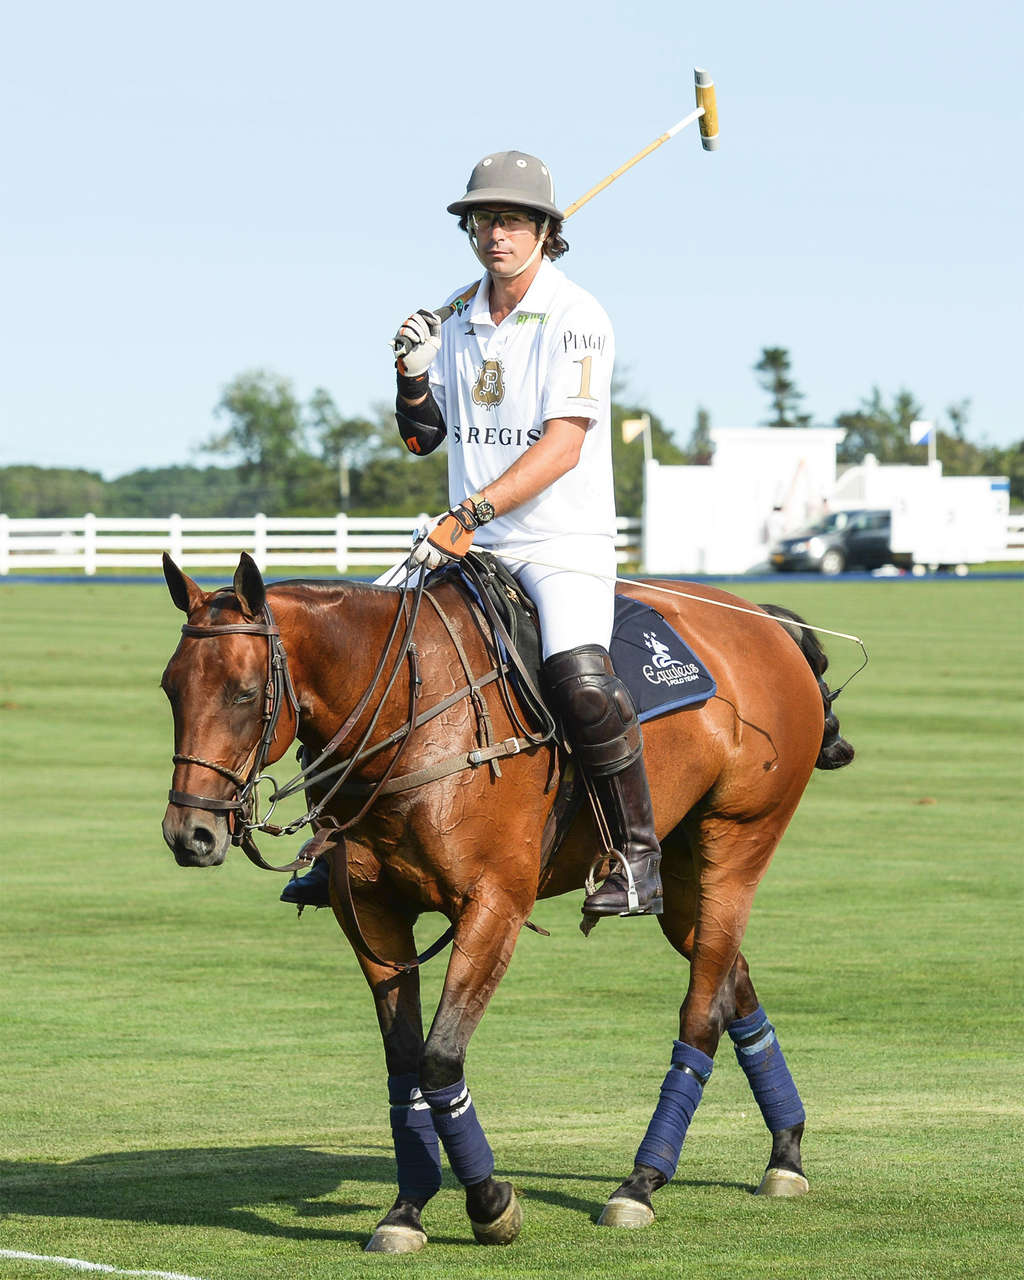 St. Regis Announces Inaugural St. Regis Polo Cup in Sonoma Valle